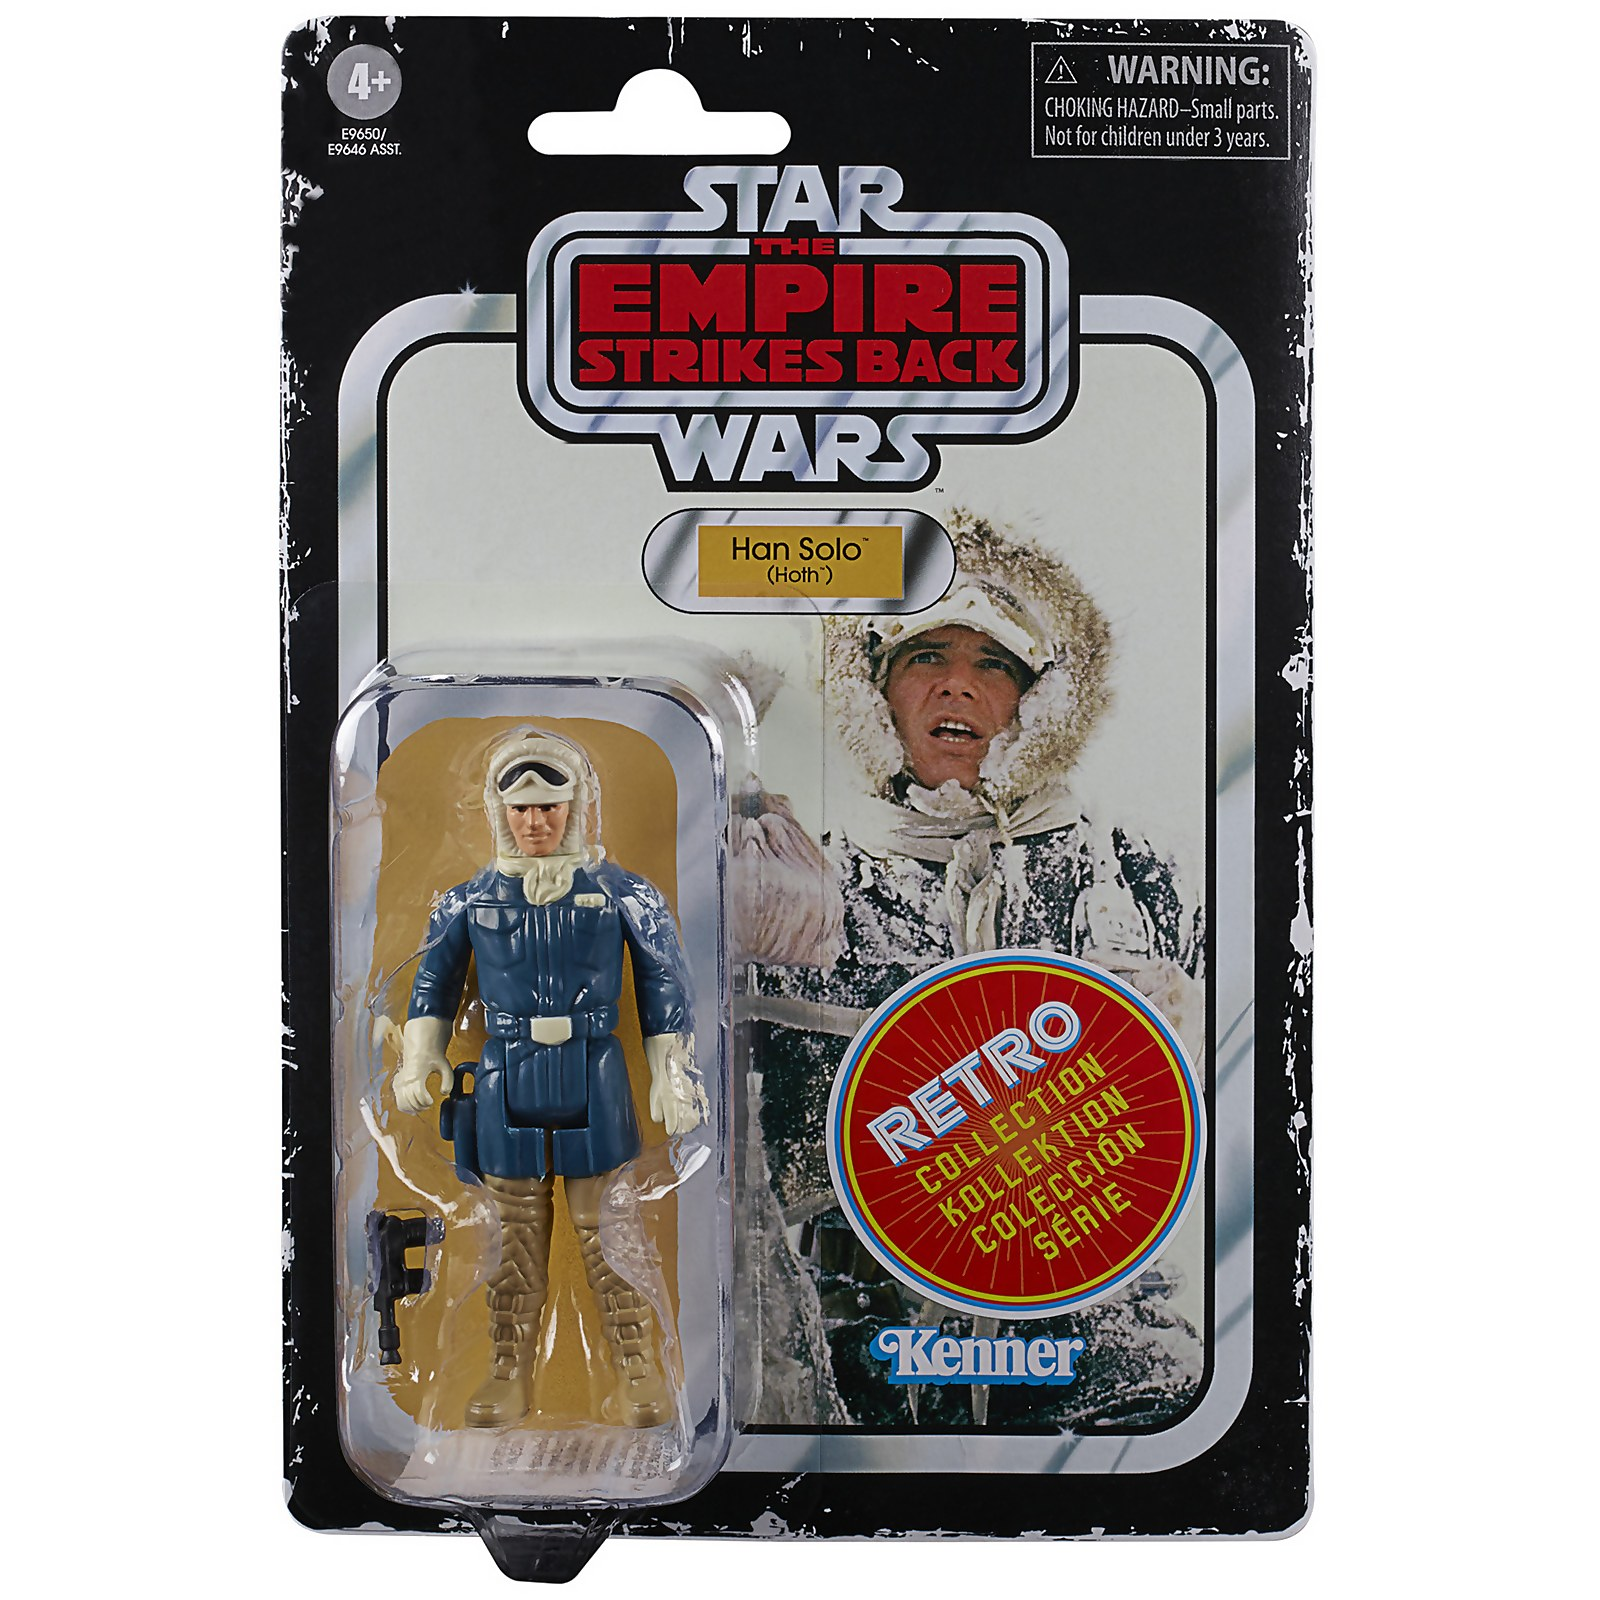 Image of Hasbro Star Wars Retro Collection Han Solo (Hoth) Toy Action Figure